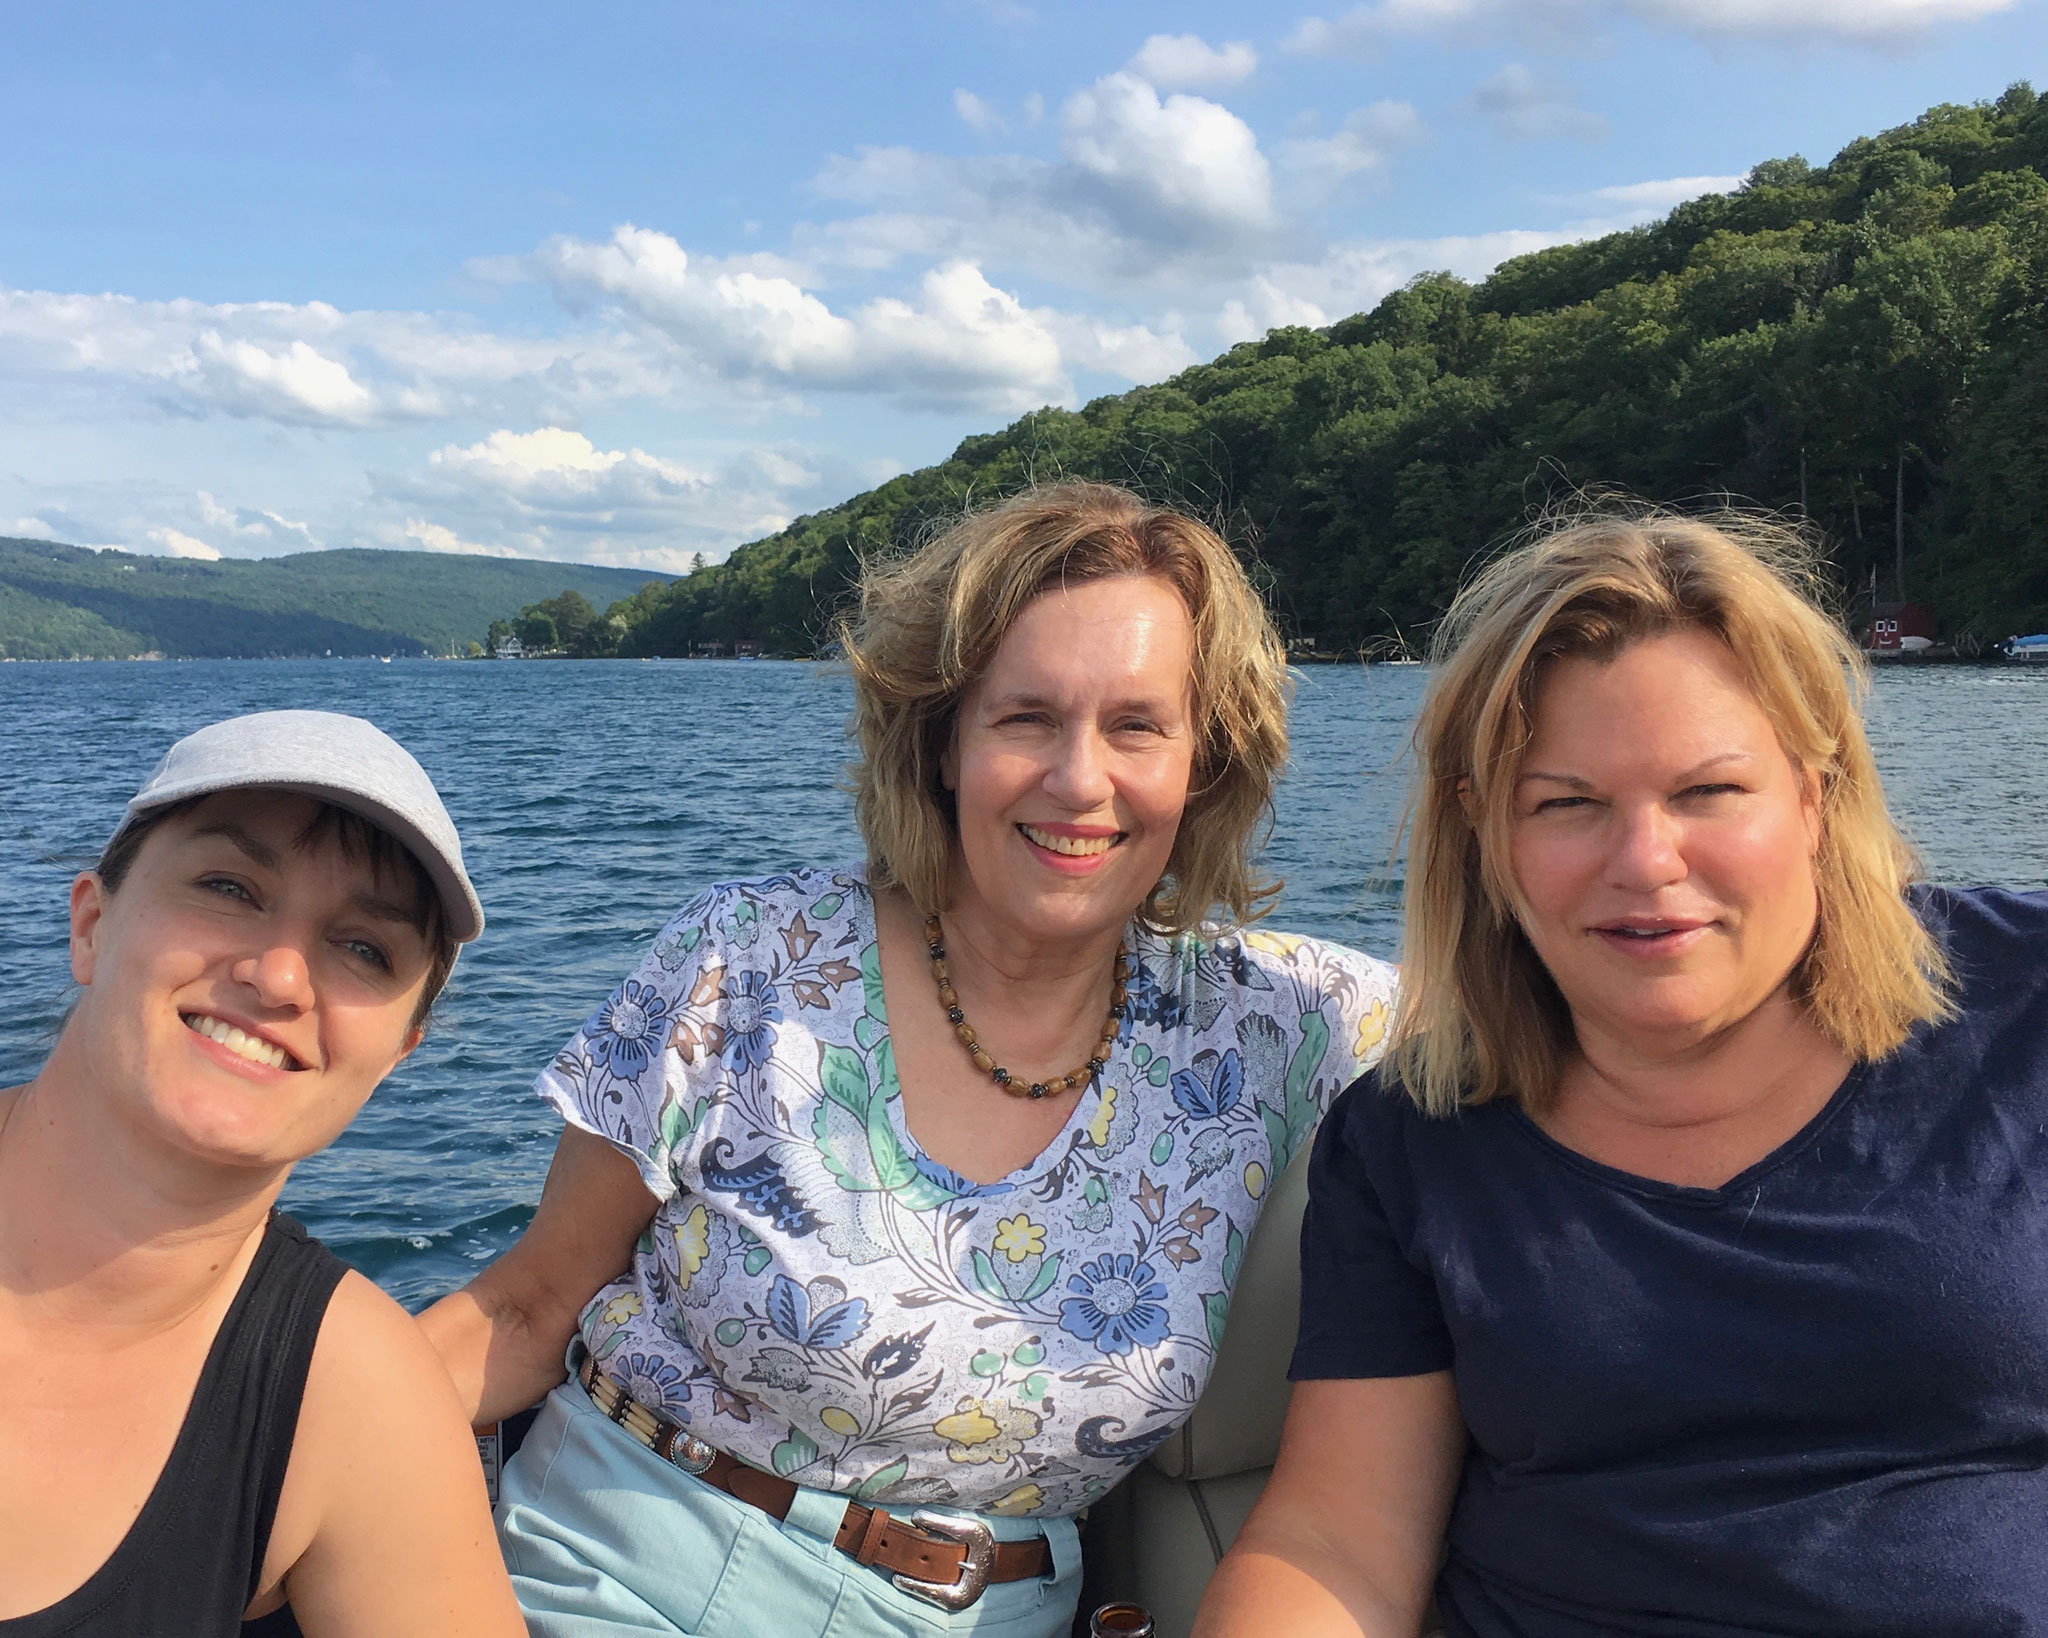 Wendy, Lorraine, & Celeste, July, 2018 Skaneateles Lake